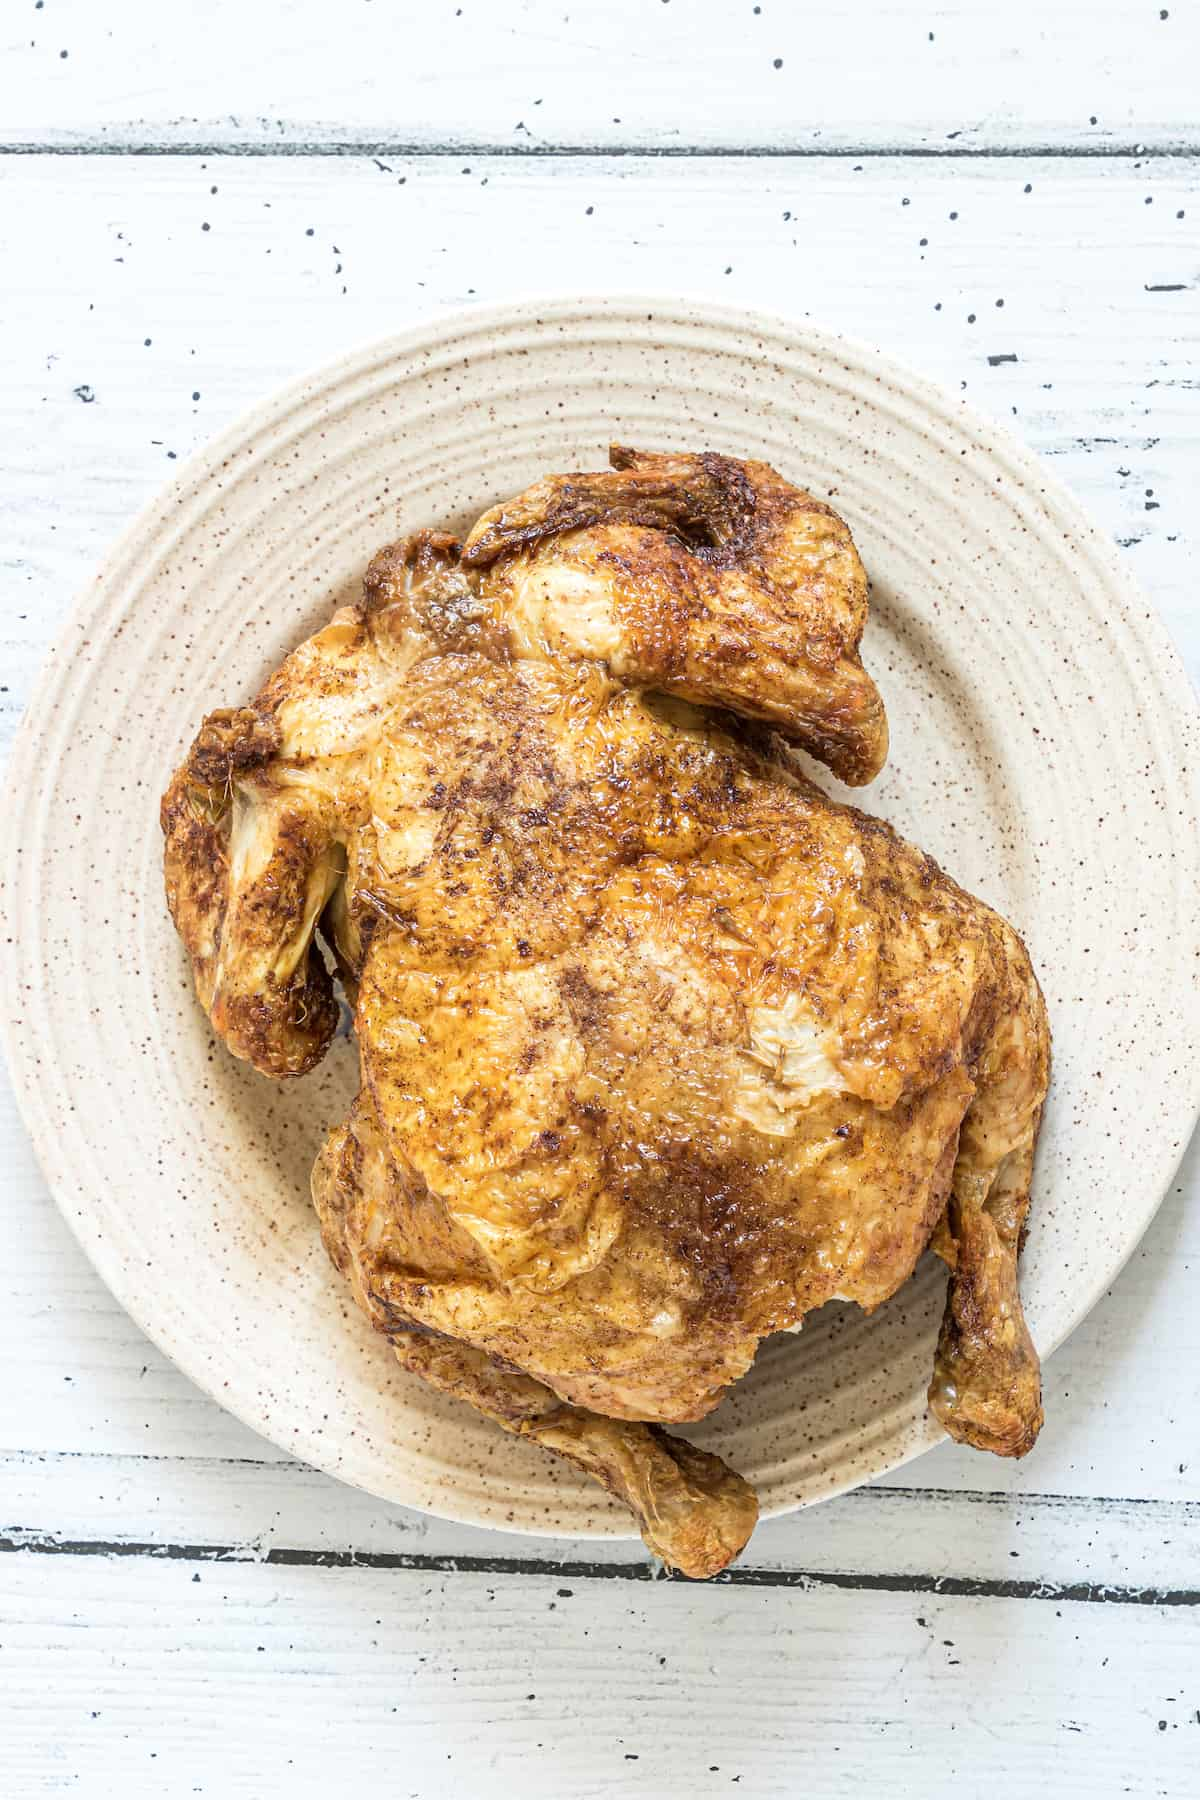 the finished air fryer whole chicken served on a white plate